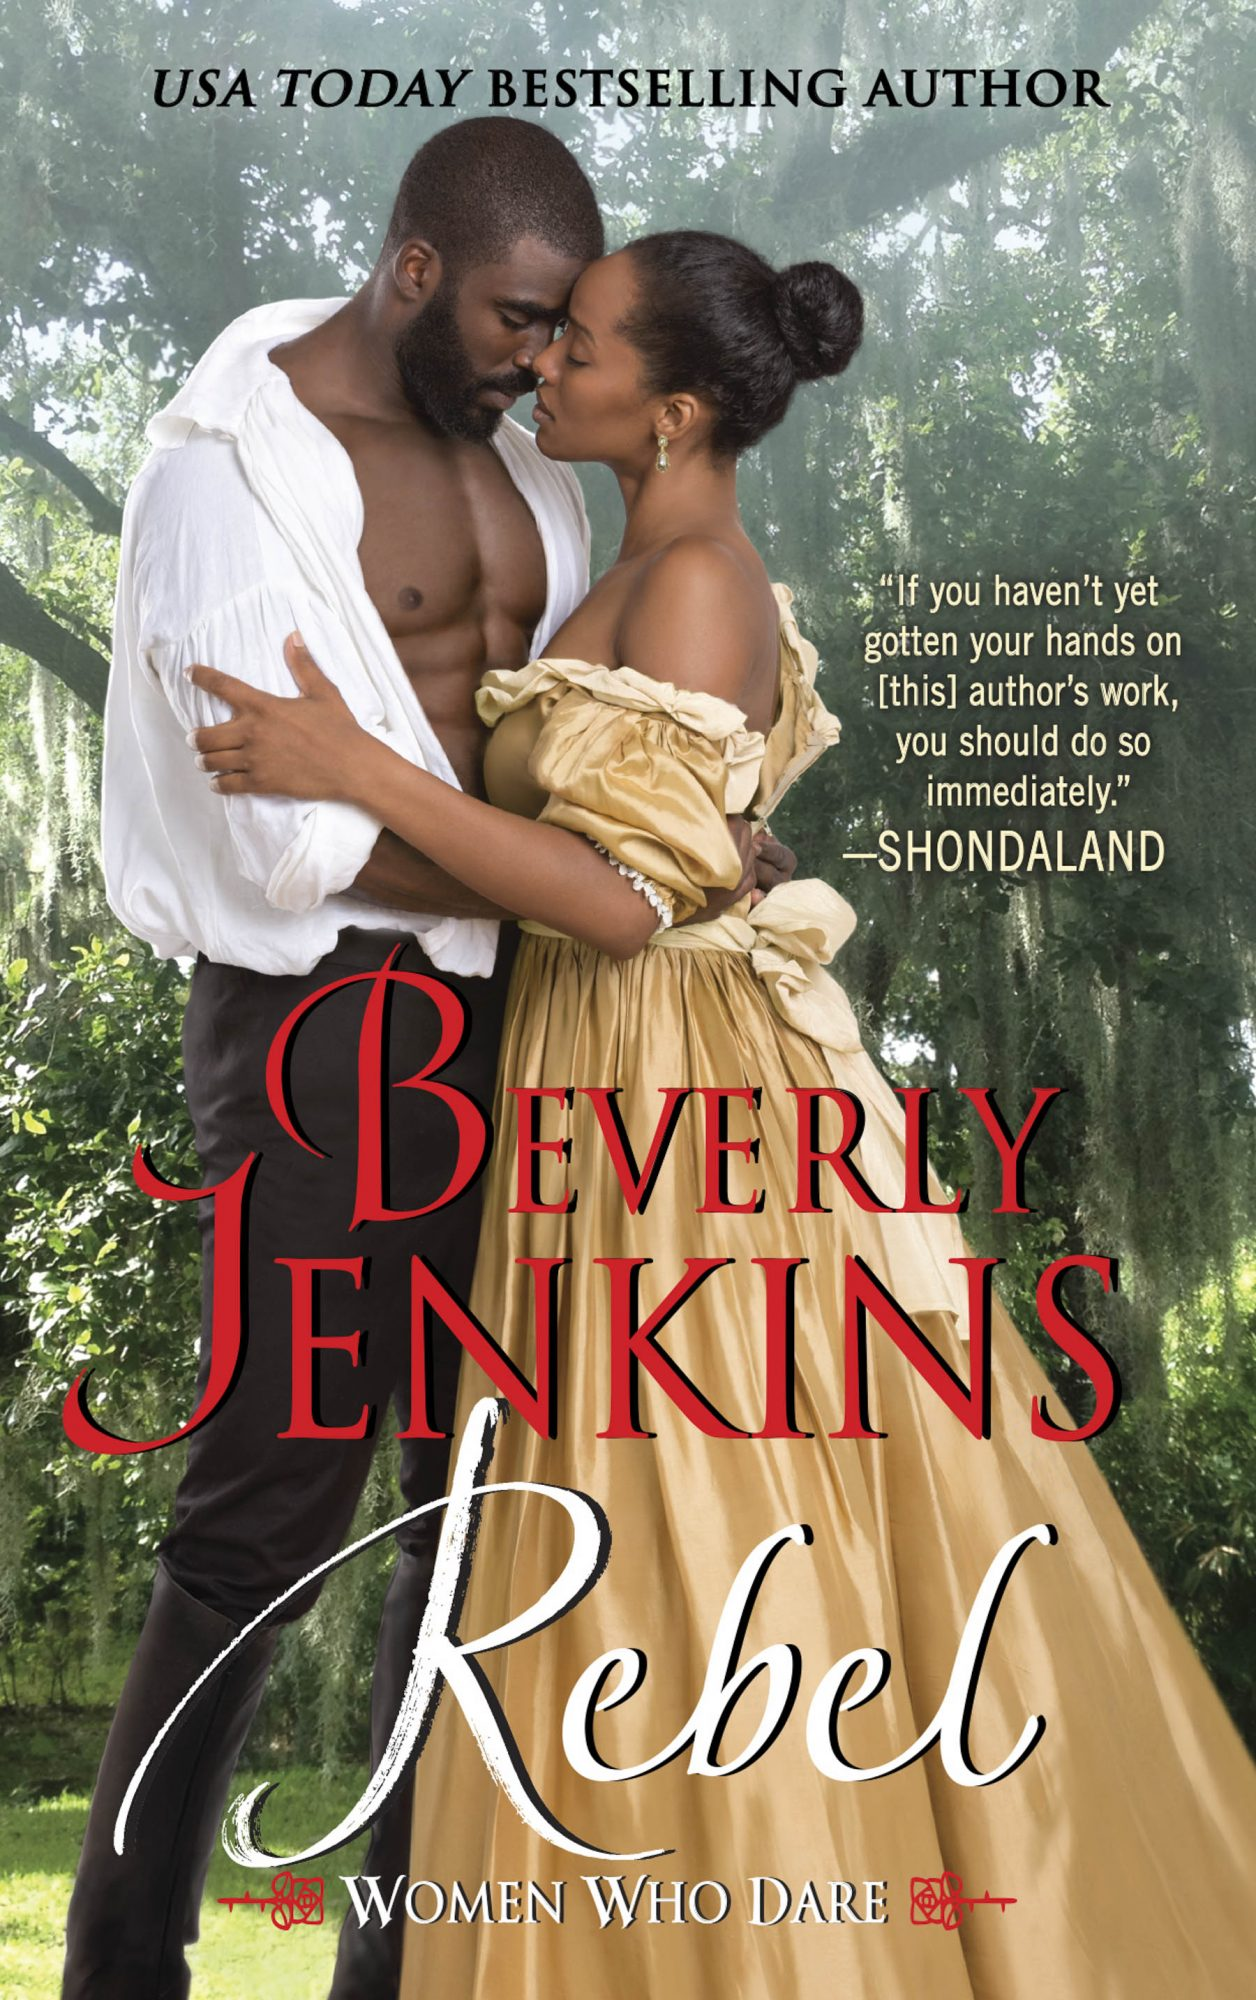 Rebel: Women Who Dare by Beverly Jenkins CR: HarperCollins